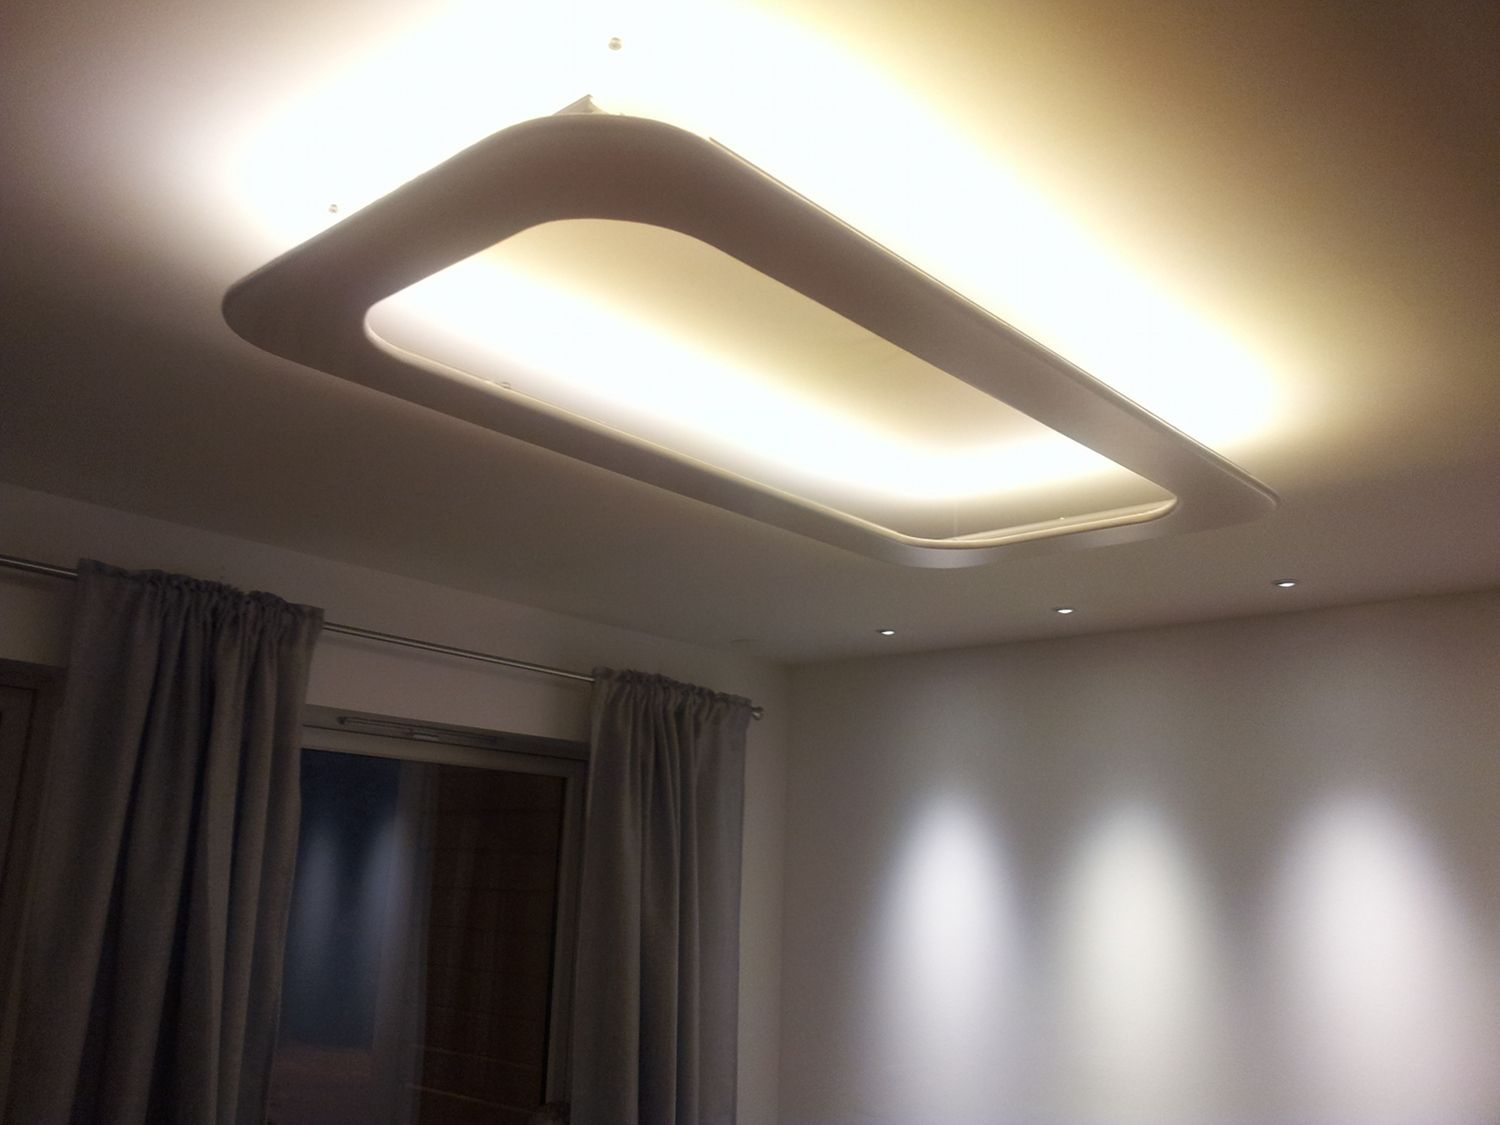 Planning LED Ceiling Lights for Home Interior -  http://www.ideas4homes.com/planning-led-ceiling-lights-for-home-interior/ |  Featured | Pinterest | Ceilings, ...